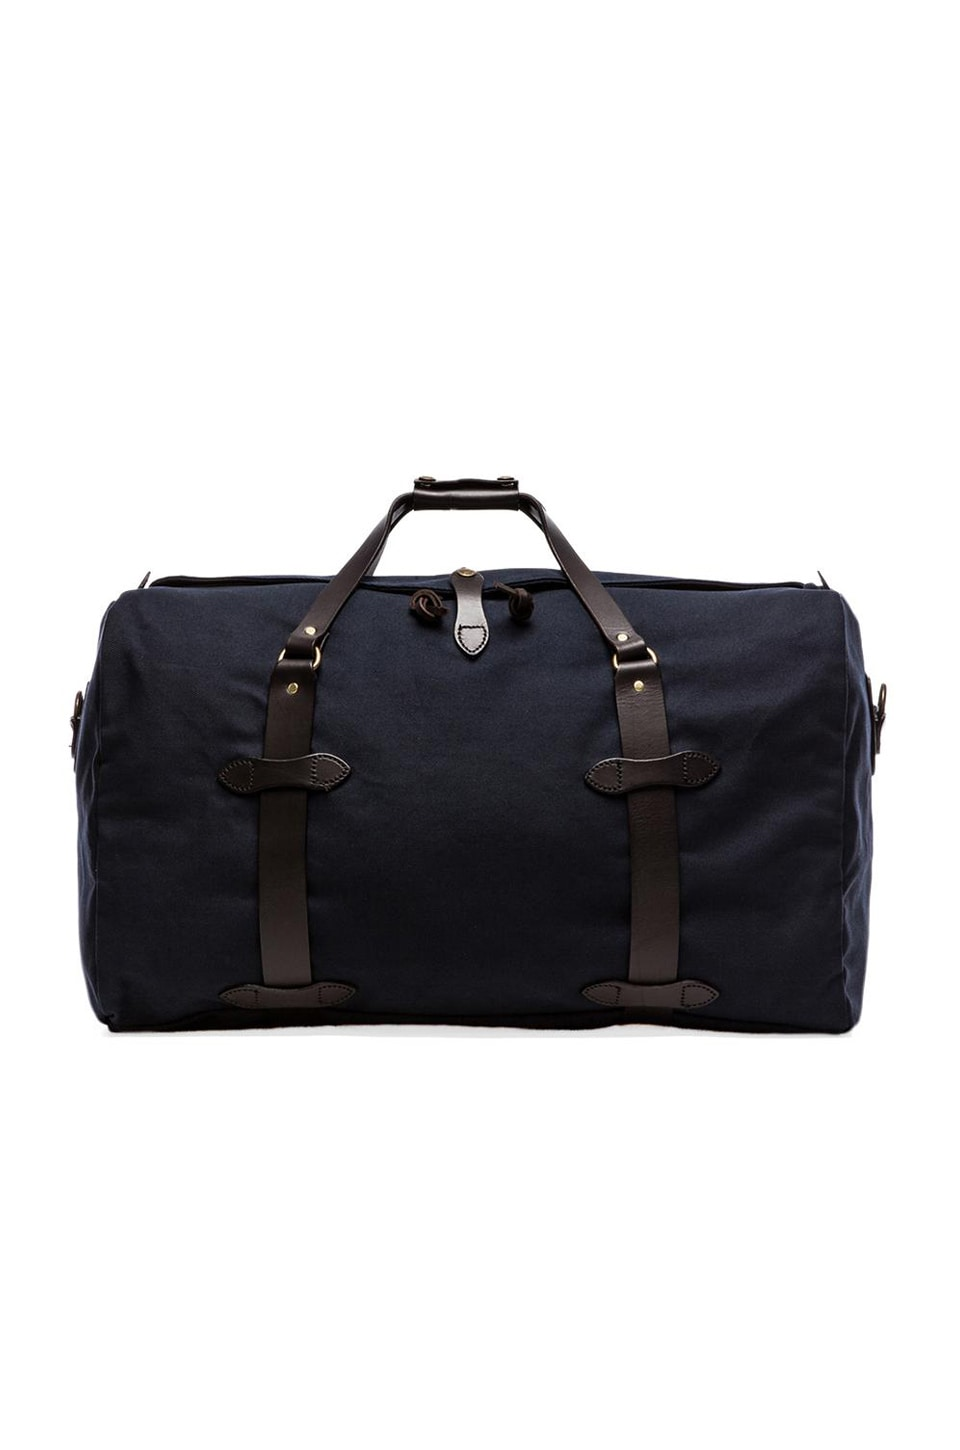 Filson Medium Duffle in Navy